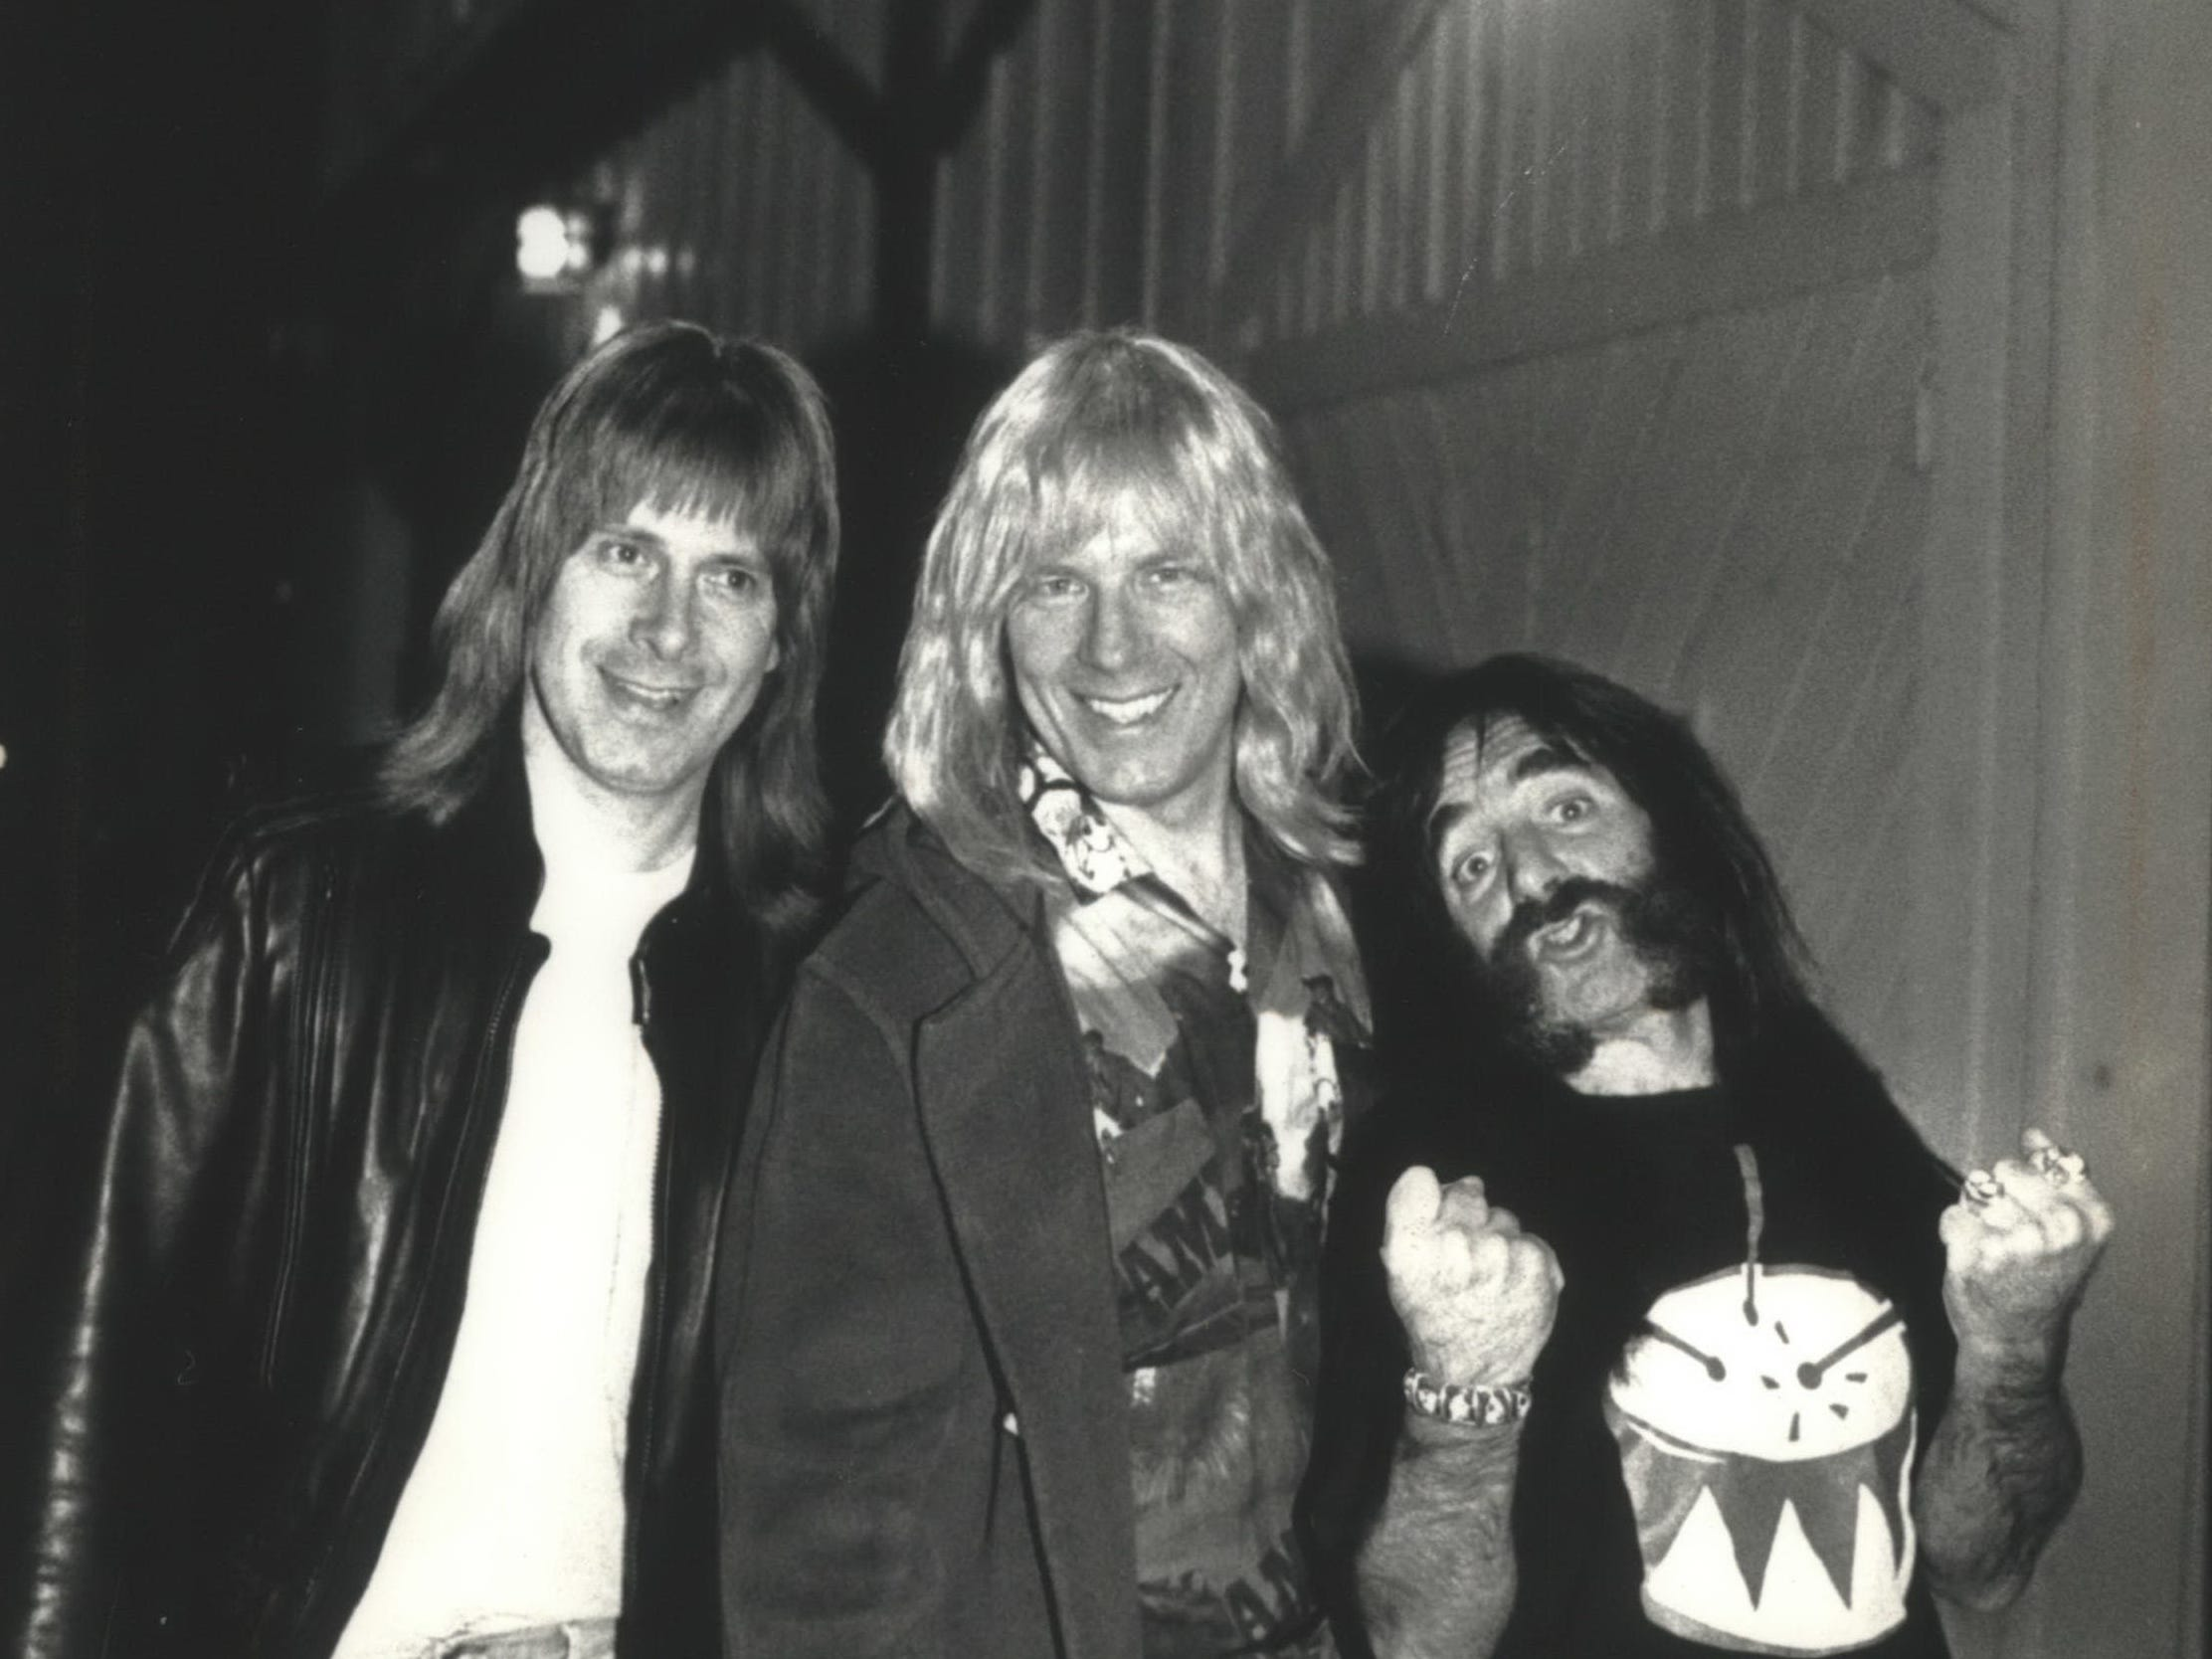 "Christopher Guest (from left), Michael McKean and Harry Shearer - a.k.a Nigel Tufnel, David St. Hubbins and Derek Smalls, of the fictional band Spinal Tap - hang around outside Shank Hall on May 20, 1992. Opened at 1434 N. Farwell Ave. in 1989, Shank Hall took its name from a fictional Milwaukee venue that hosted a particularly disastrous concert in the 1984 mockumentary ""This Is Spinal Tap."" This photo was published in the May 21, 1992, Milwaukee Journal."